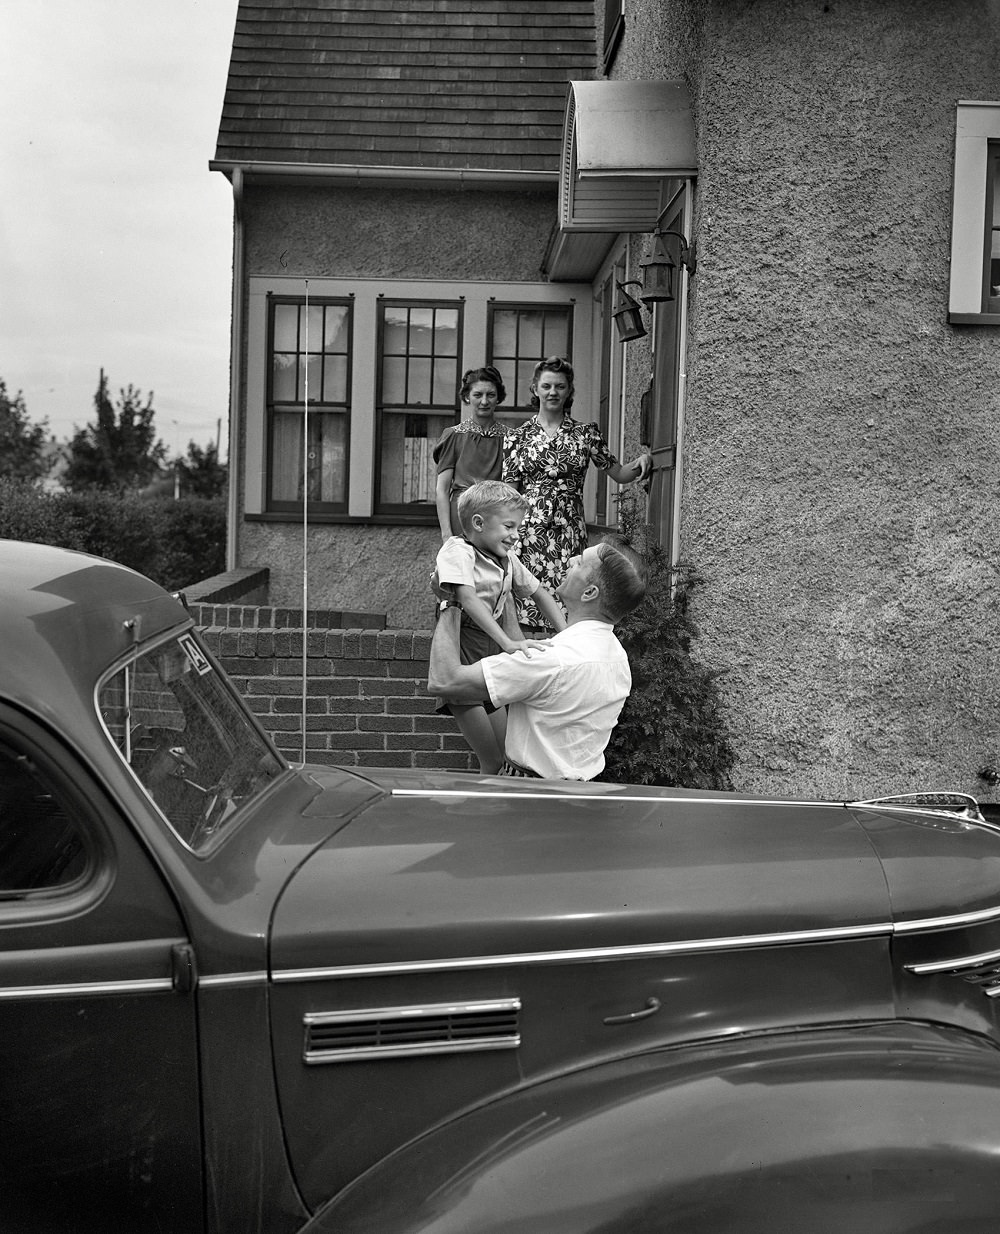 Babcock, Shirley and Earl greeting Mr. Babcock in front of the house, New York, September 1942